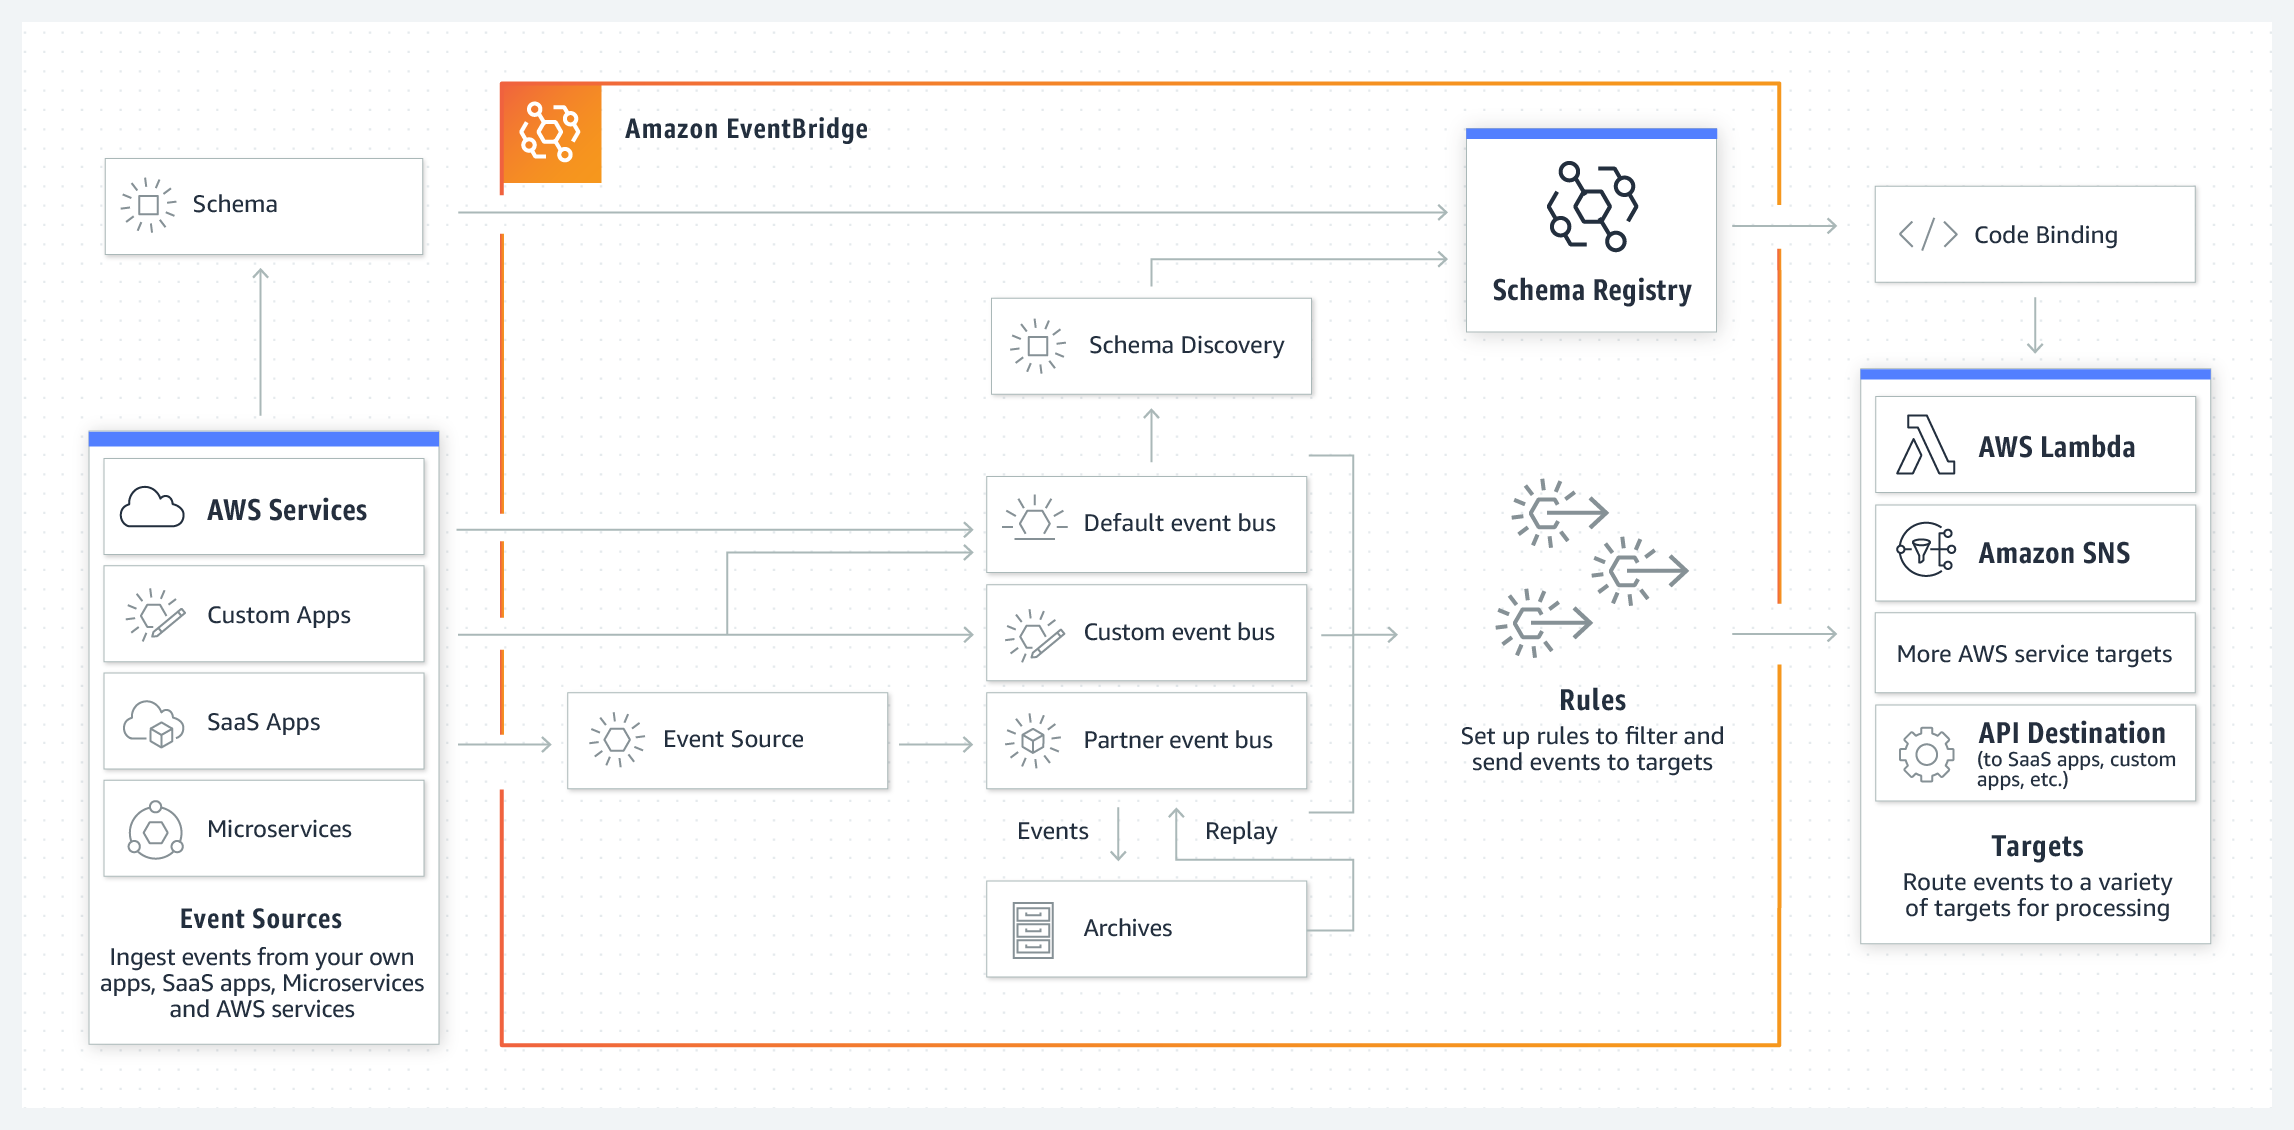 How Amazon EventBridge connects applications using events